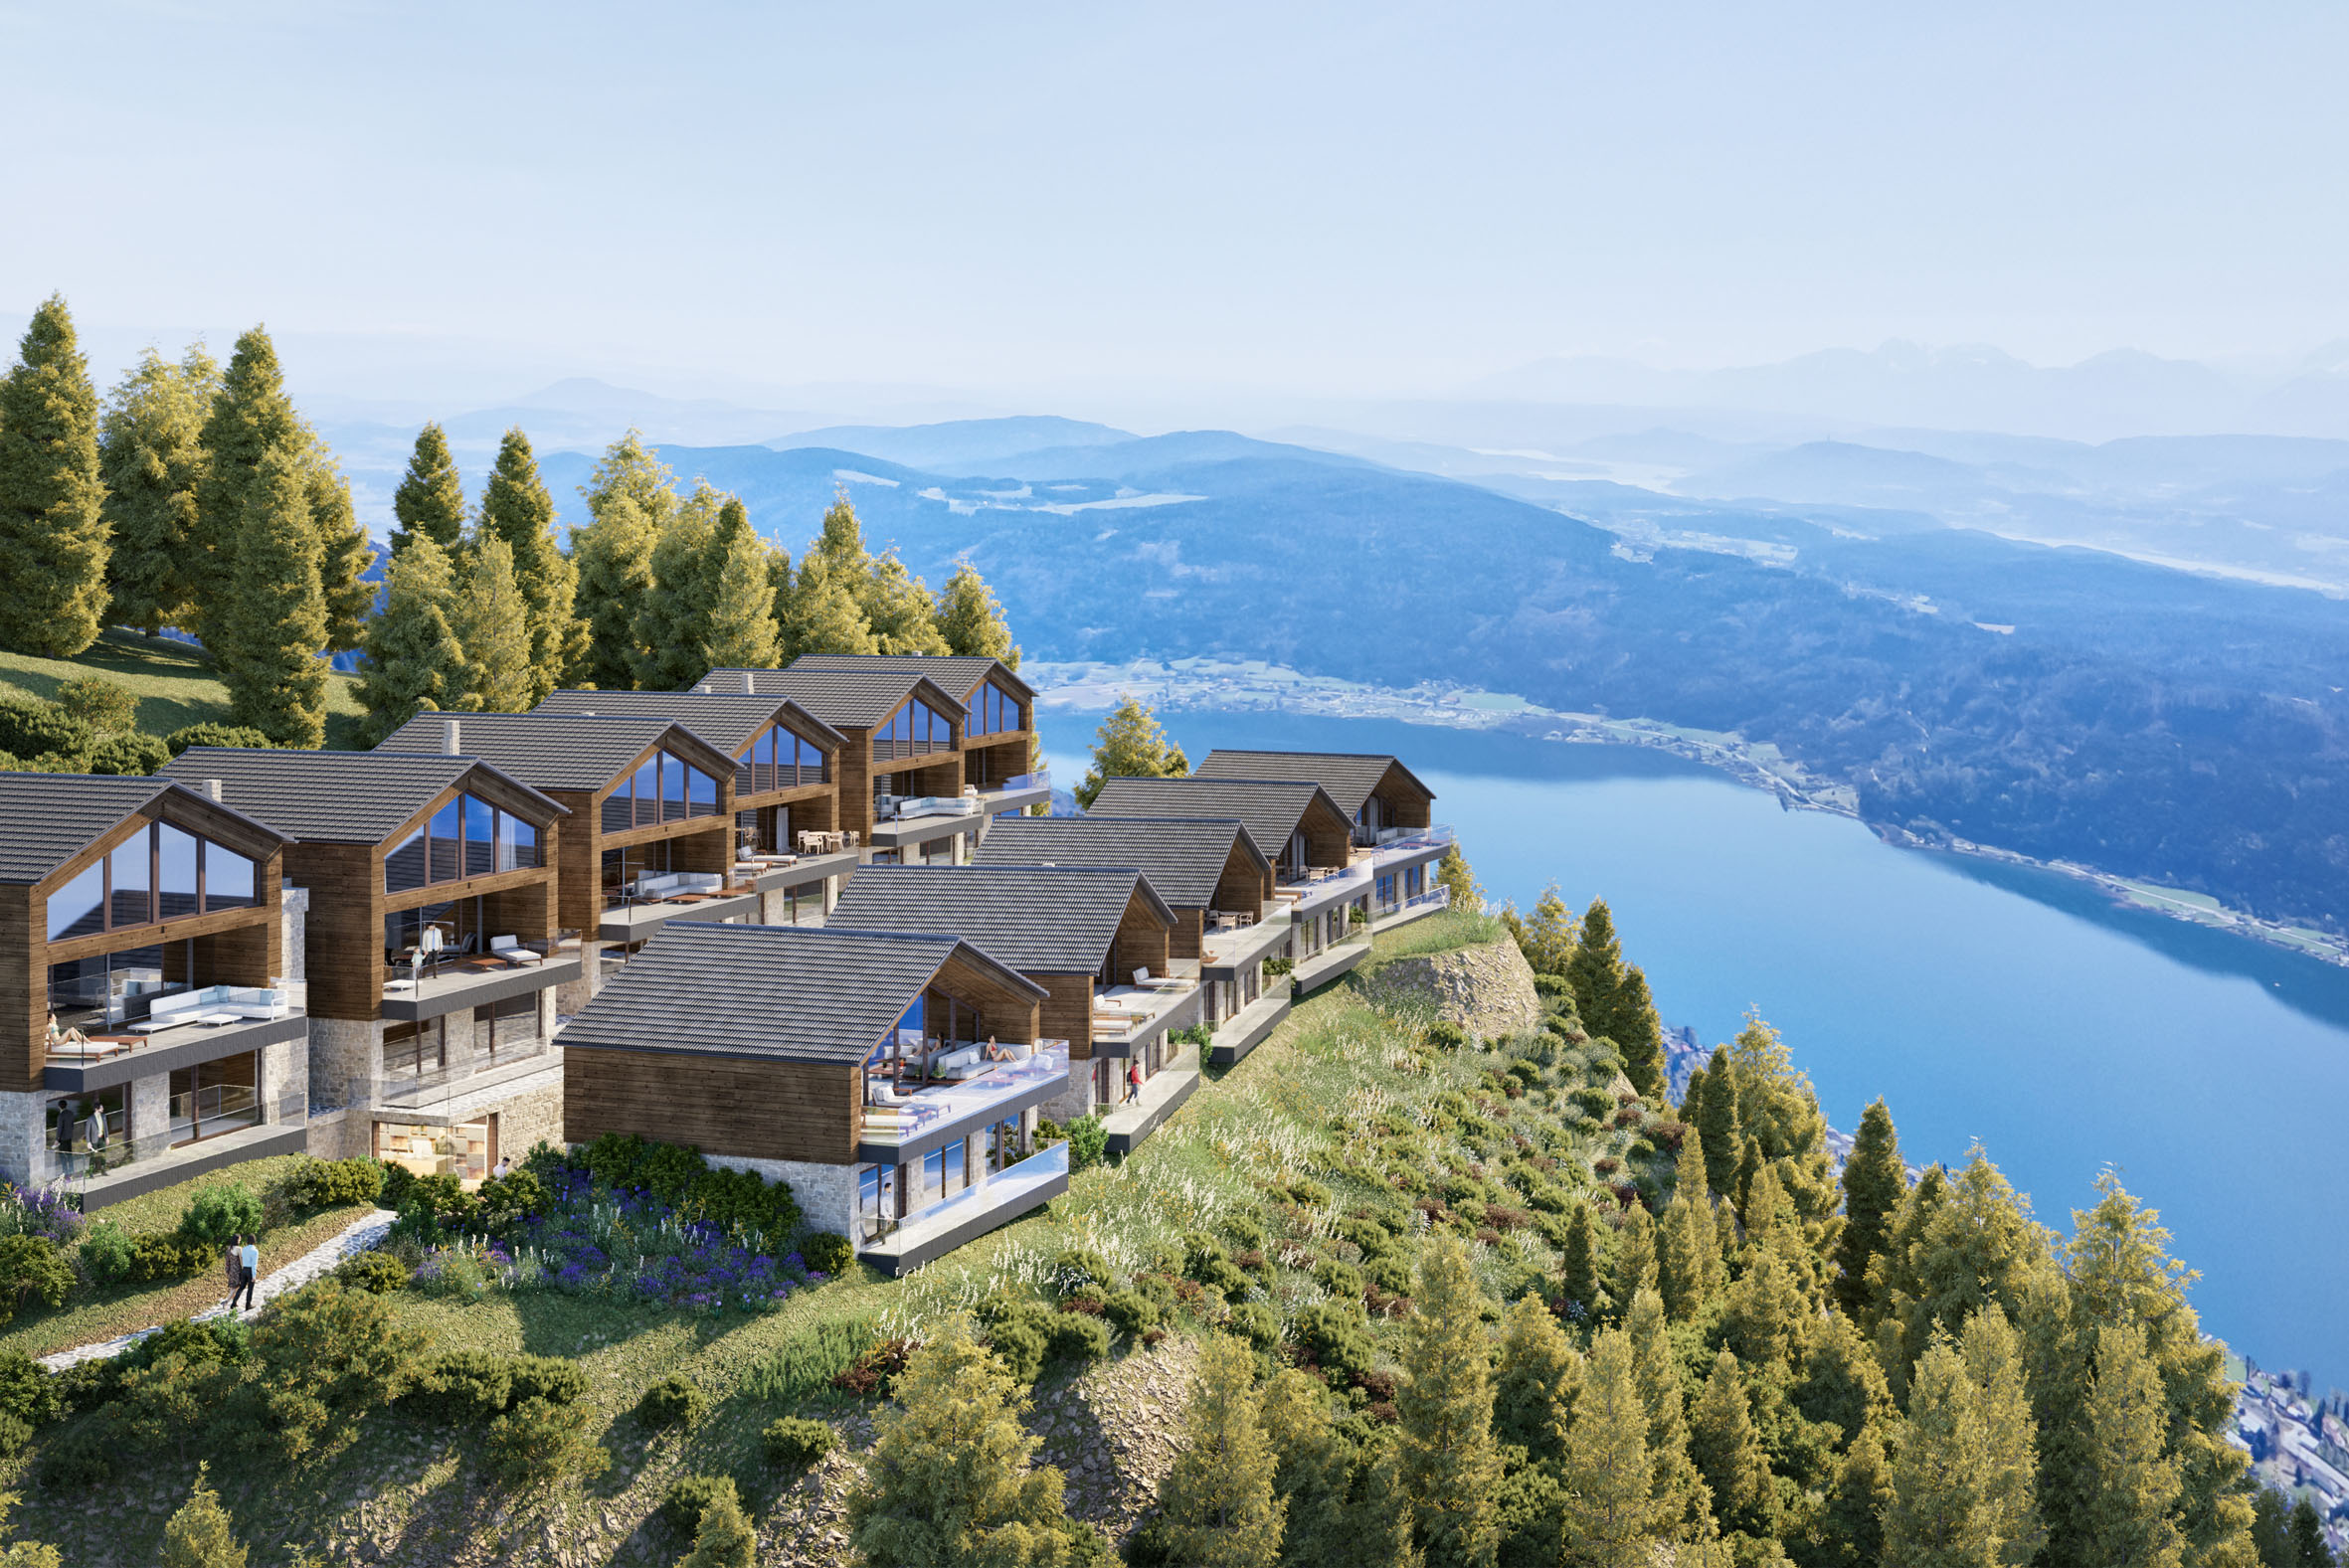 COMING SOON: Lake view chalets on the Gerlitzen for tourist rental